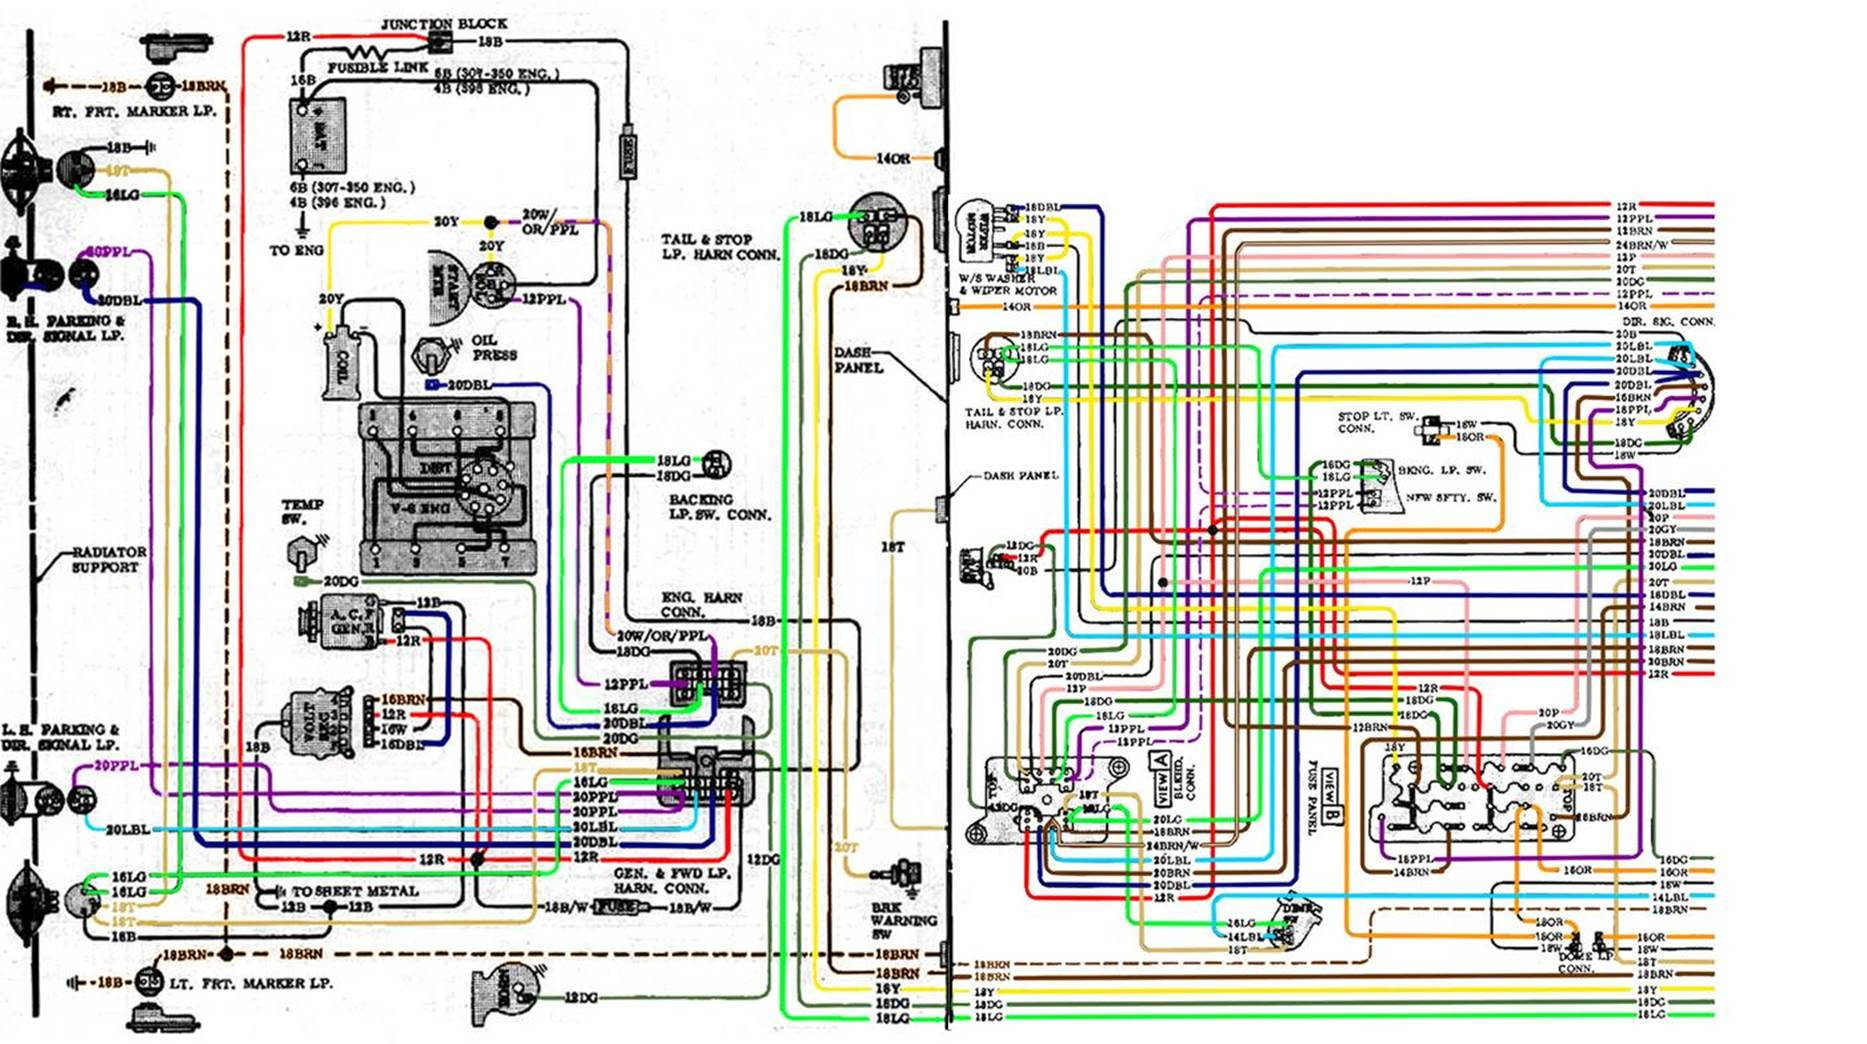 image002 67 72 chevy wiring diagram 1978 Chevy C10 Wiring-Diagram at panicattacktreatment.co